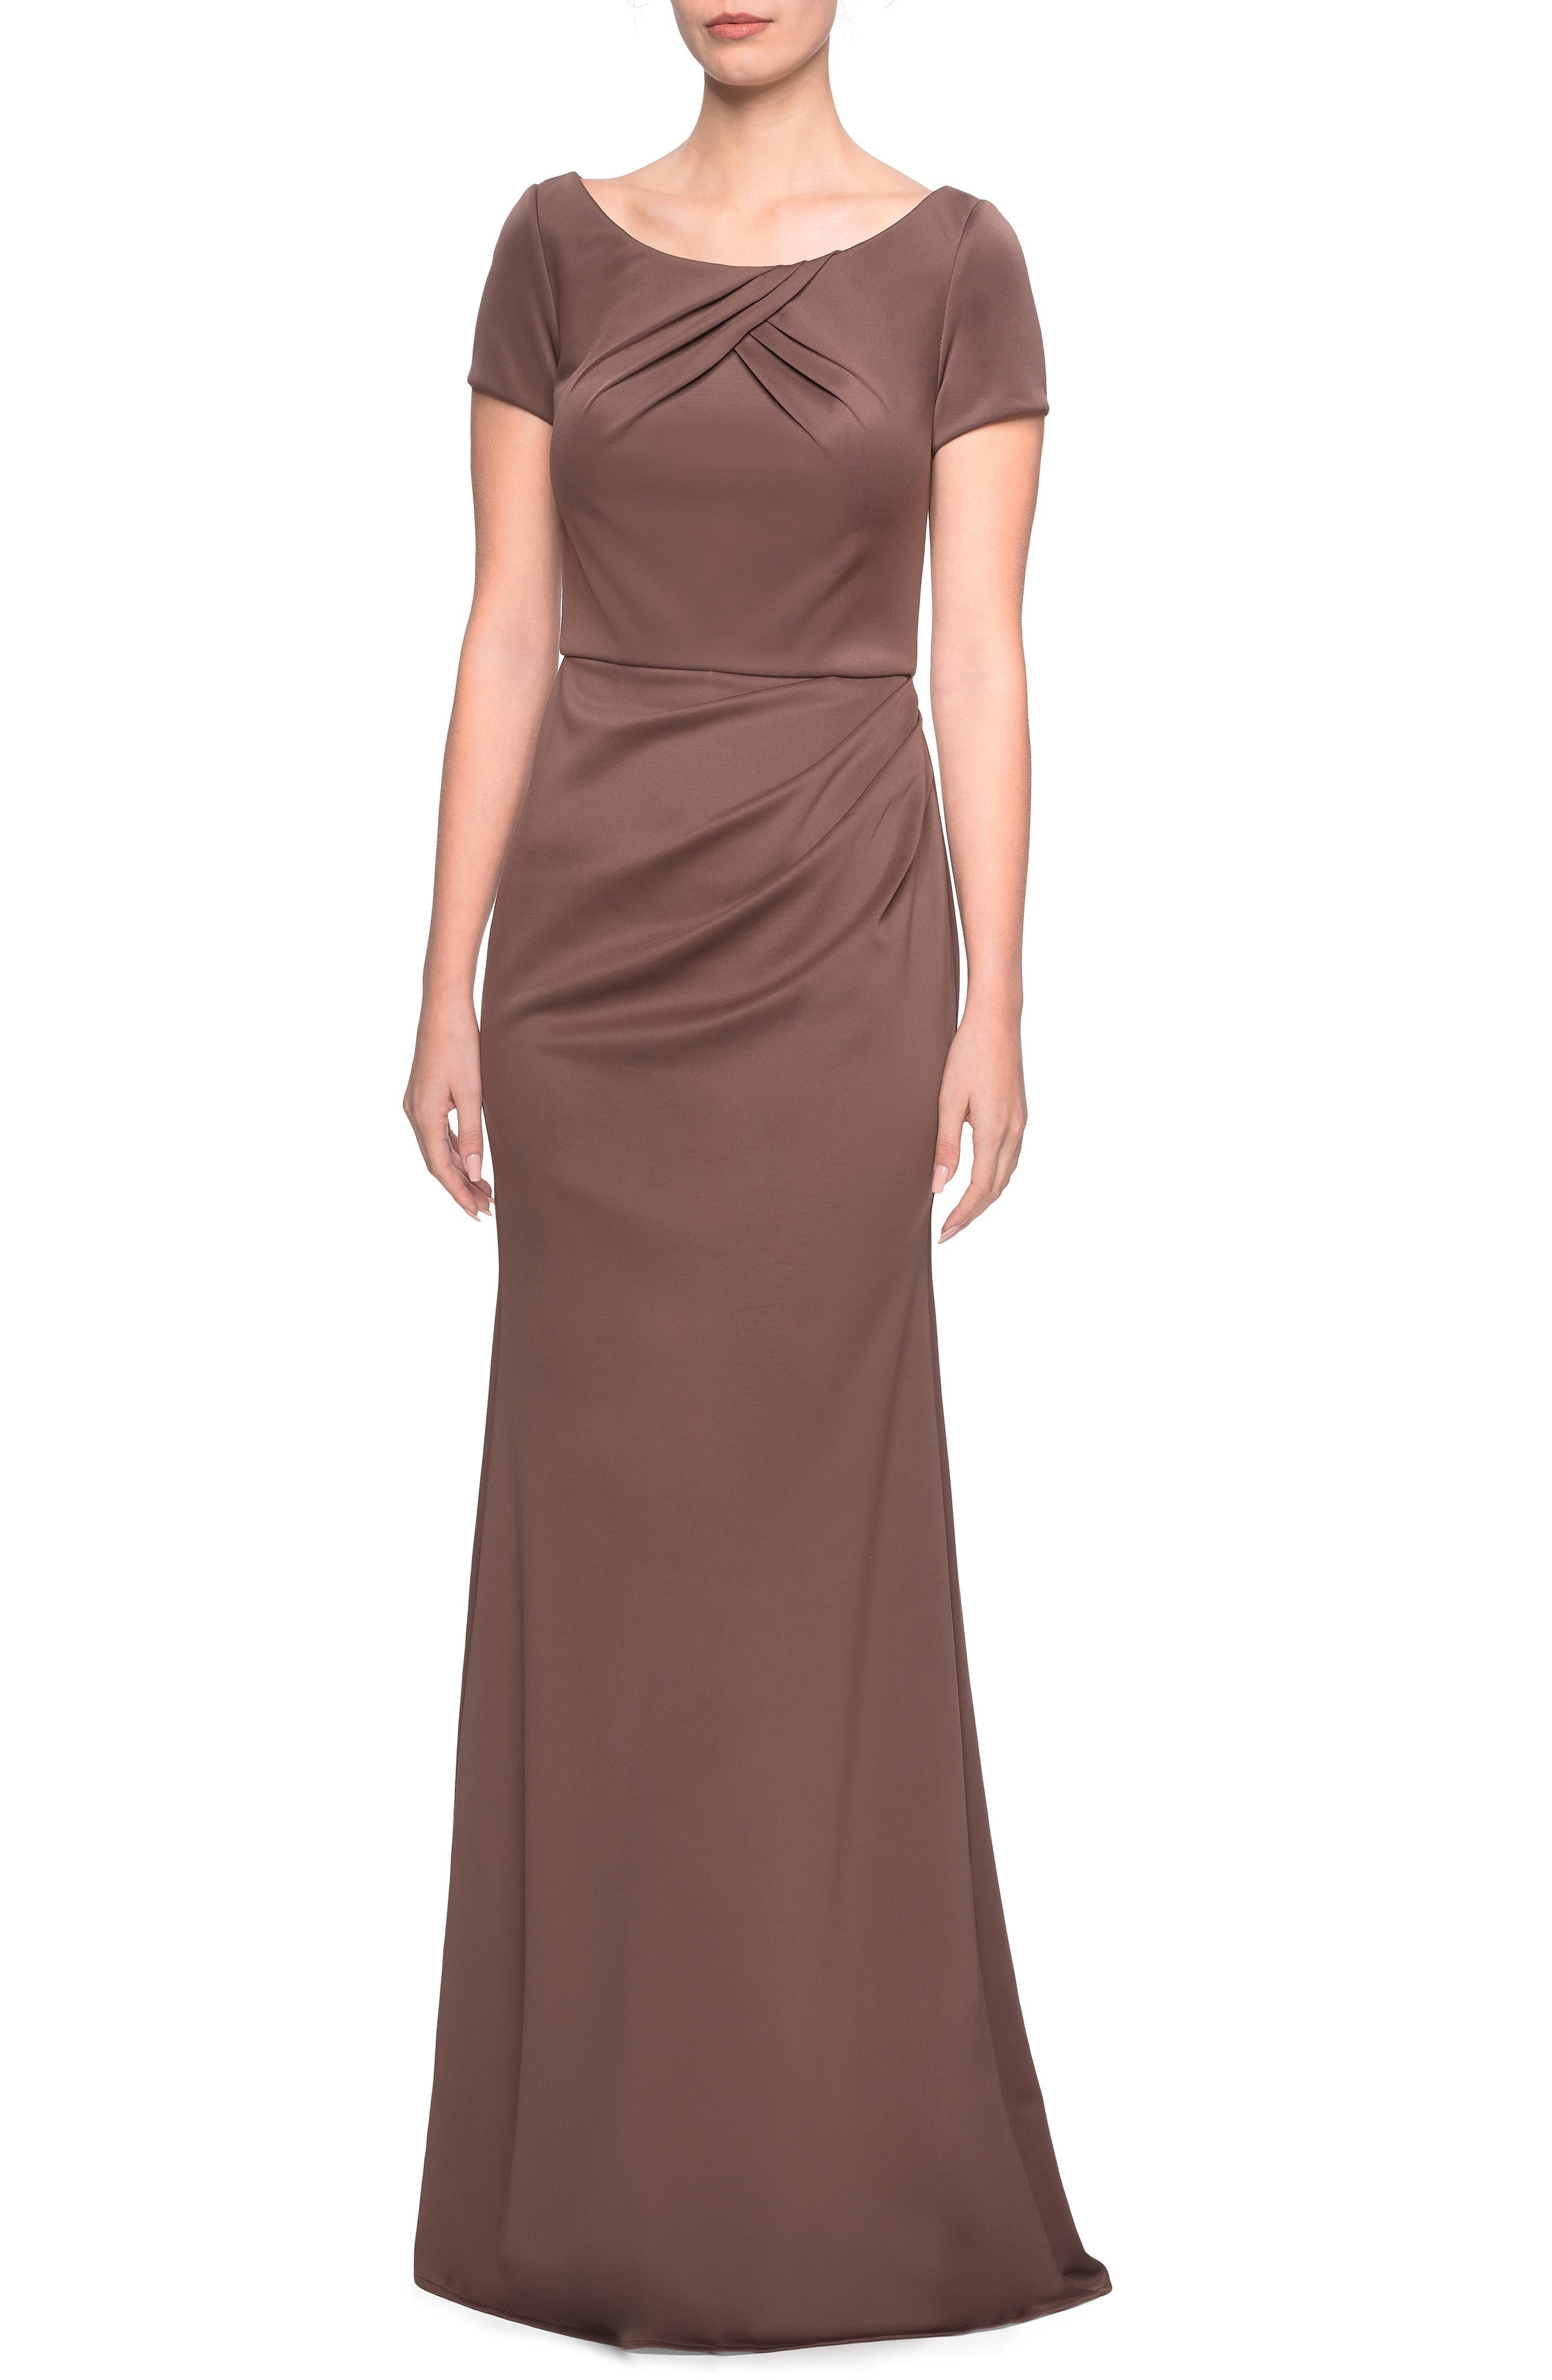 La Femme Ruched Detail Soft Jersey Evening Dress, Brown